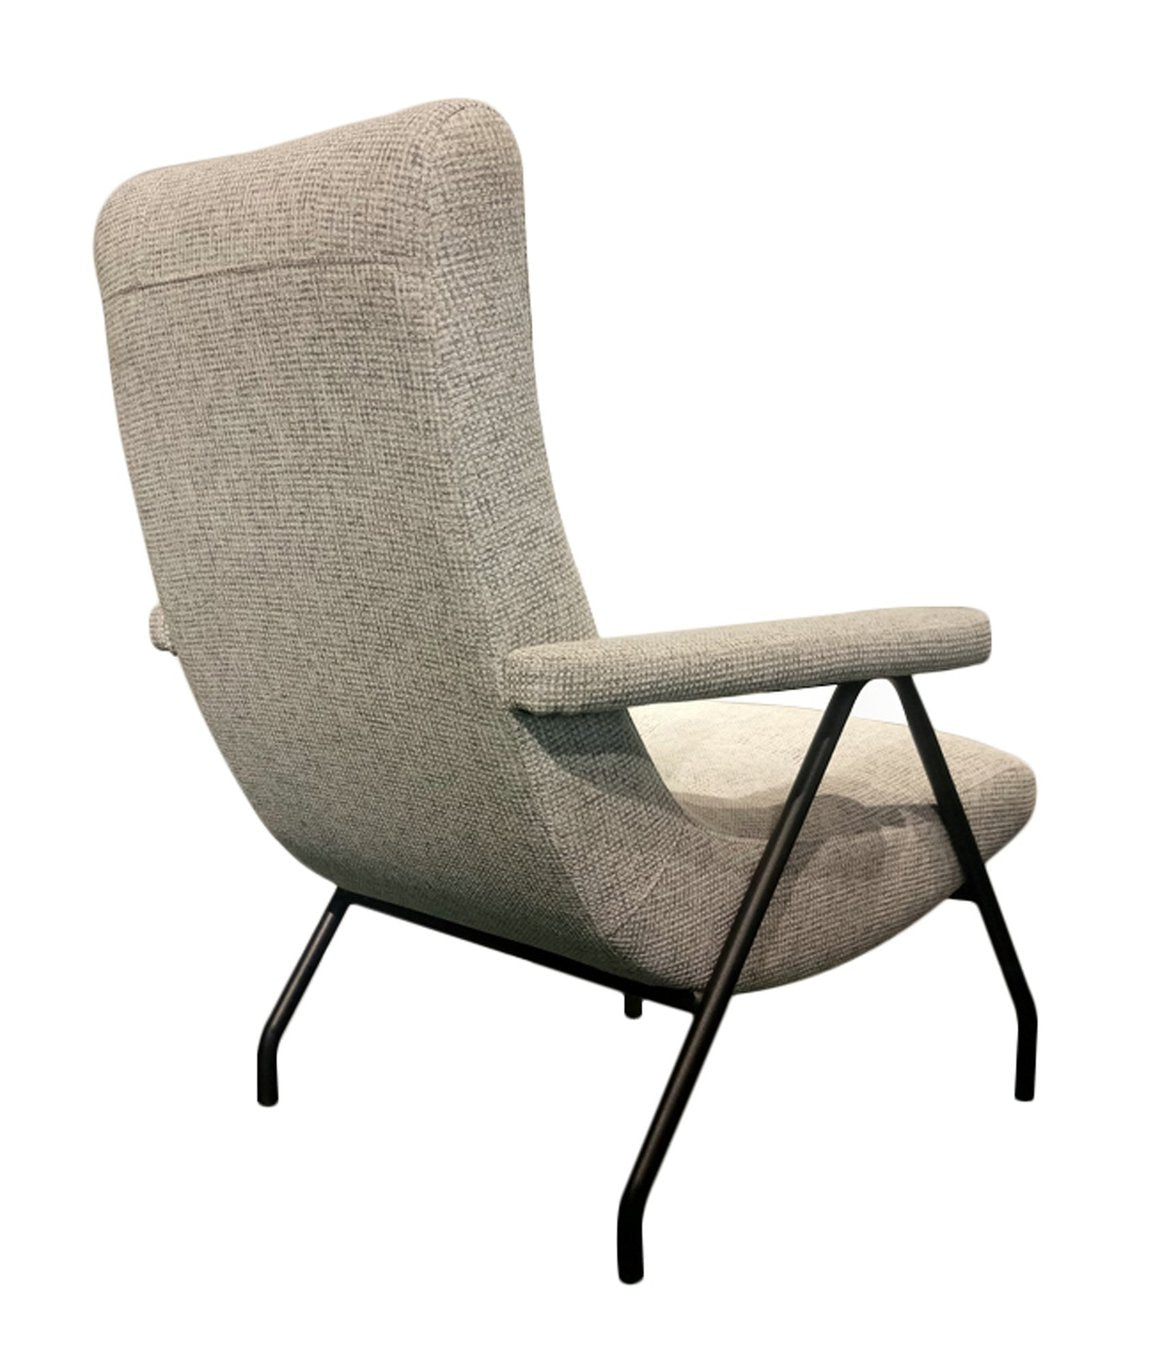 Picture of Retro Lounge Chair - Light Grey Tweed